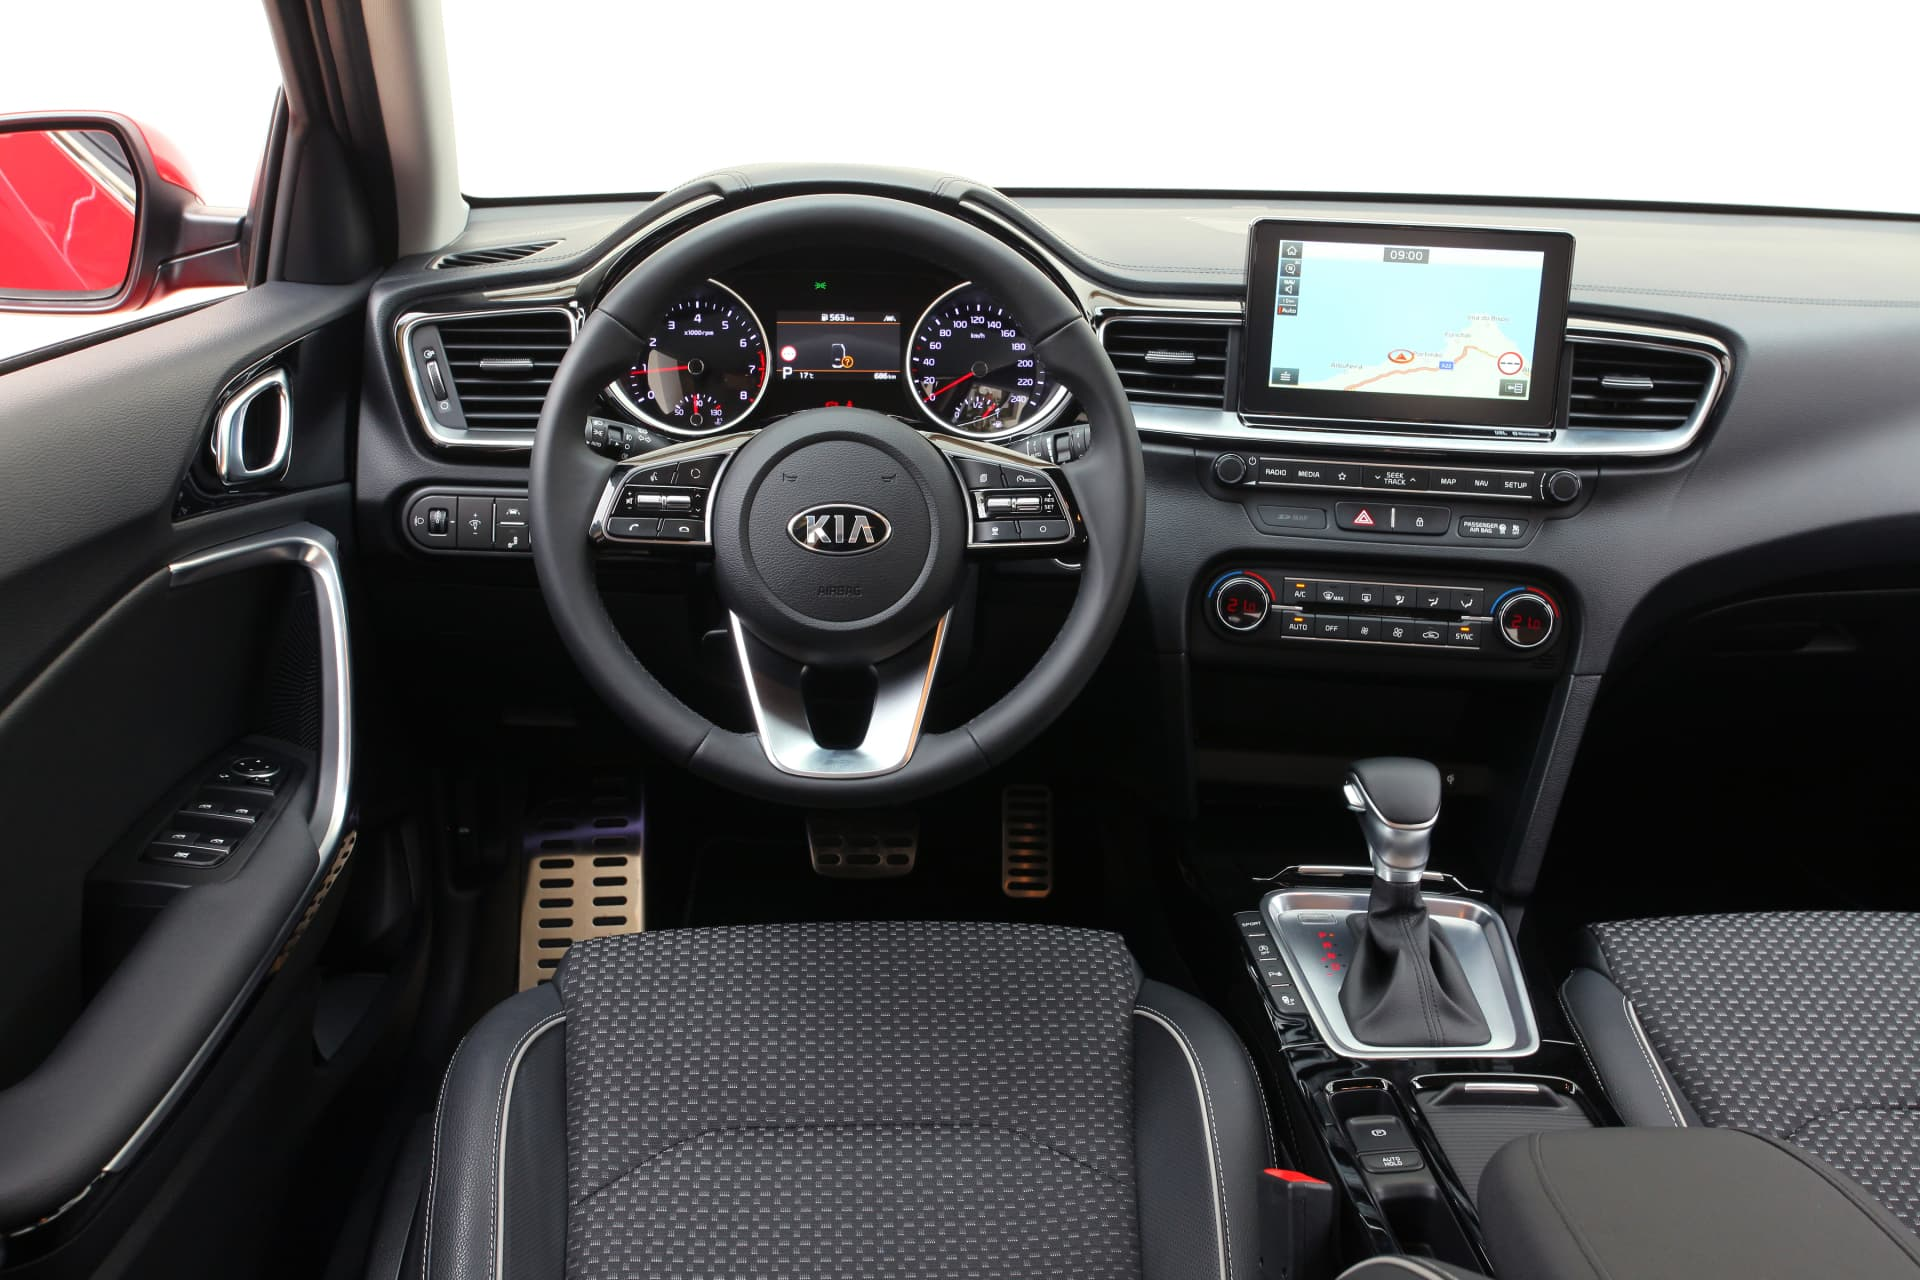 Kia Ceed 1 4 T Gdi 7 Dct Transmission 140hp Track Red 27